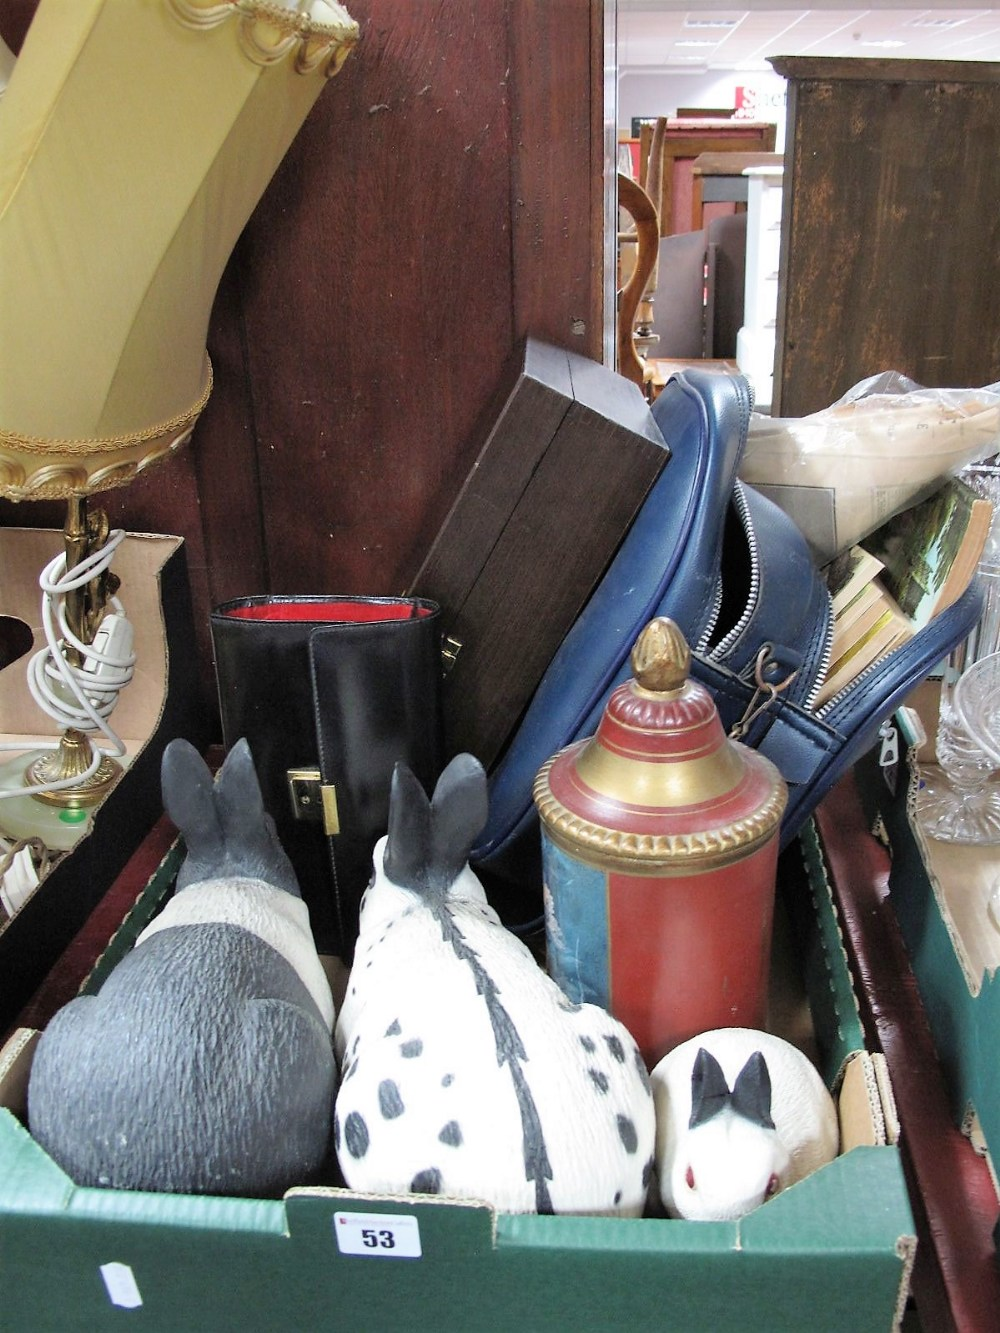 Lot 53 - Resin Rabbits, Giles magazines, Remy Martin glasses, purse, etc:- One Box